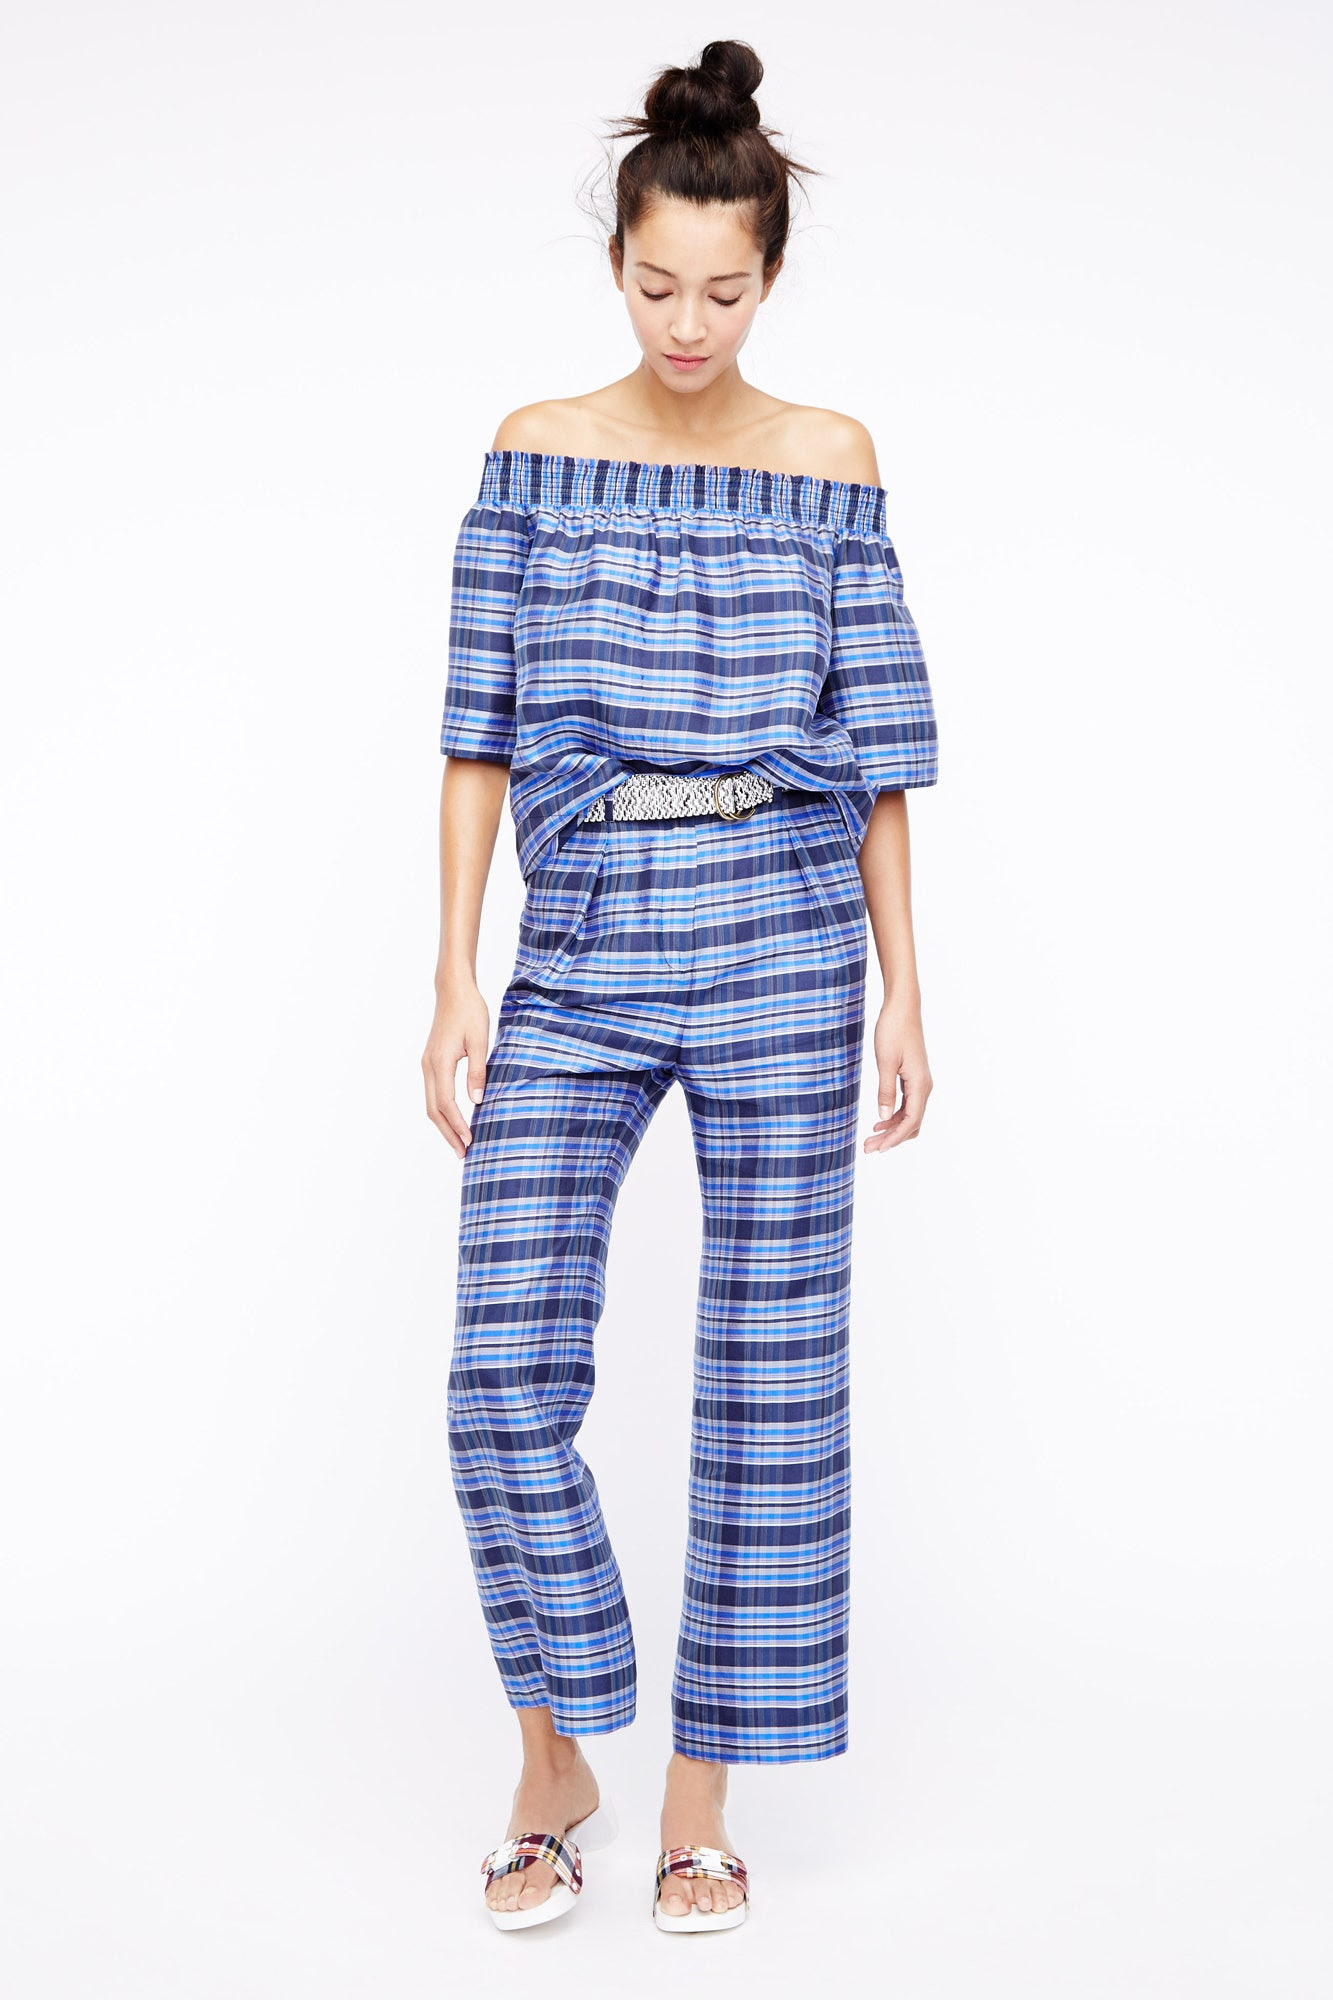 J.Crew Spring 2017 Ready-to-Wear Collection - Vogue